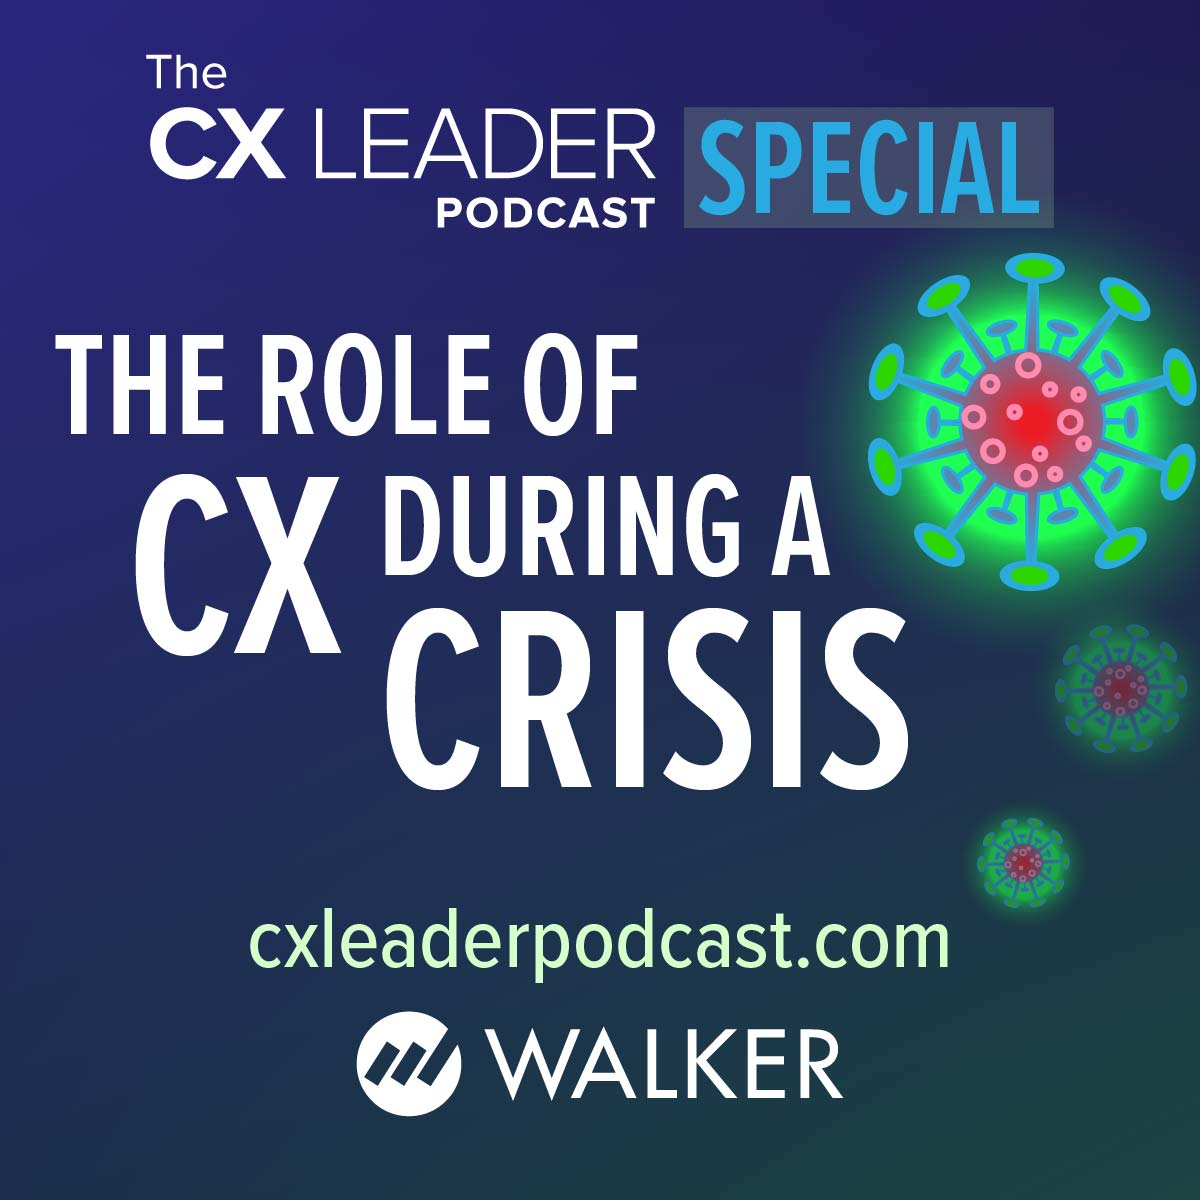 The Role of CX During a Crisis